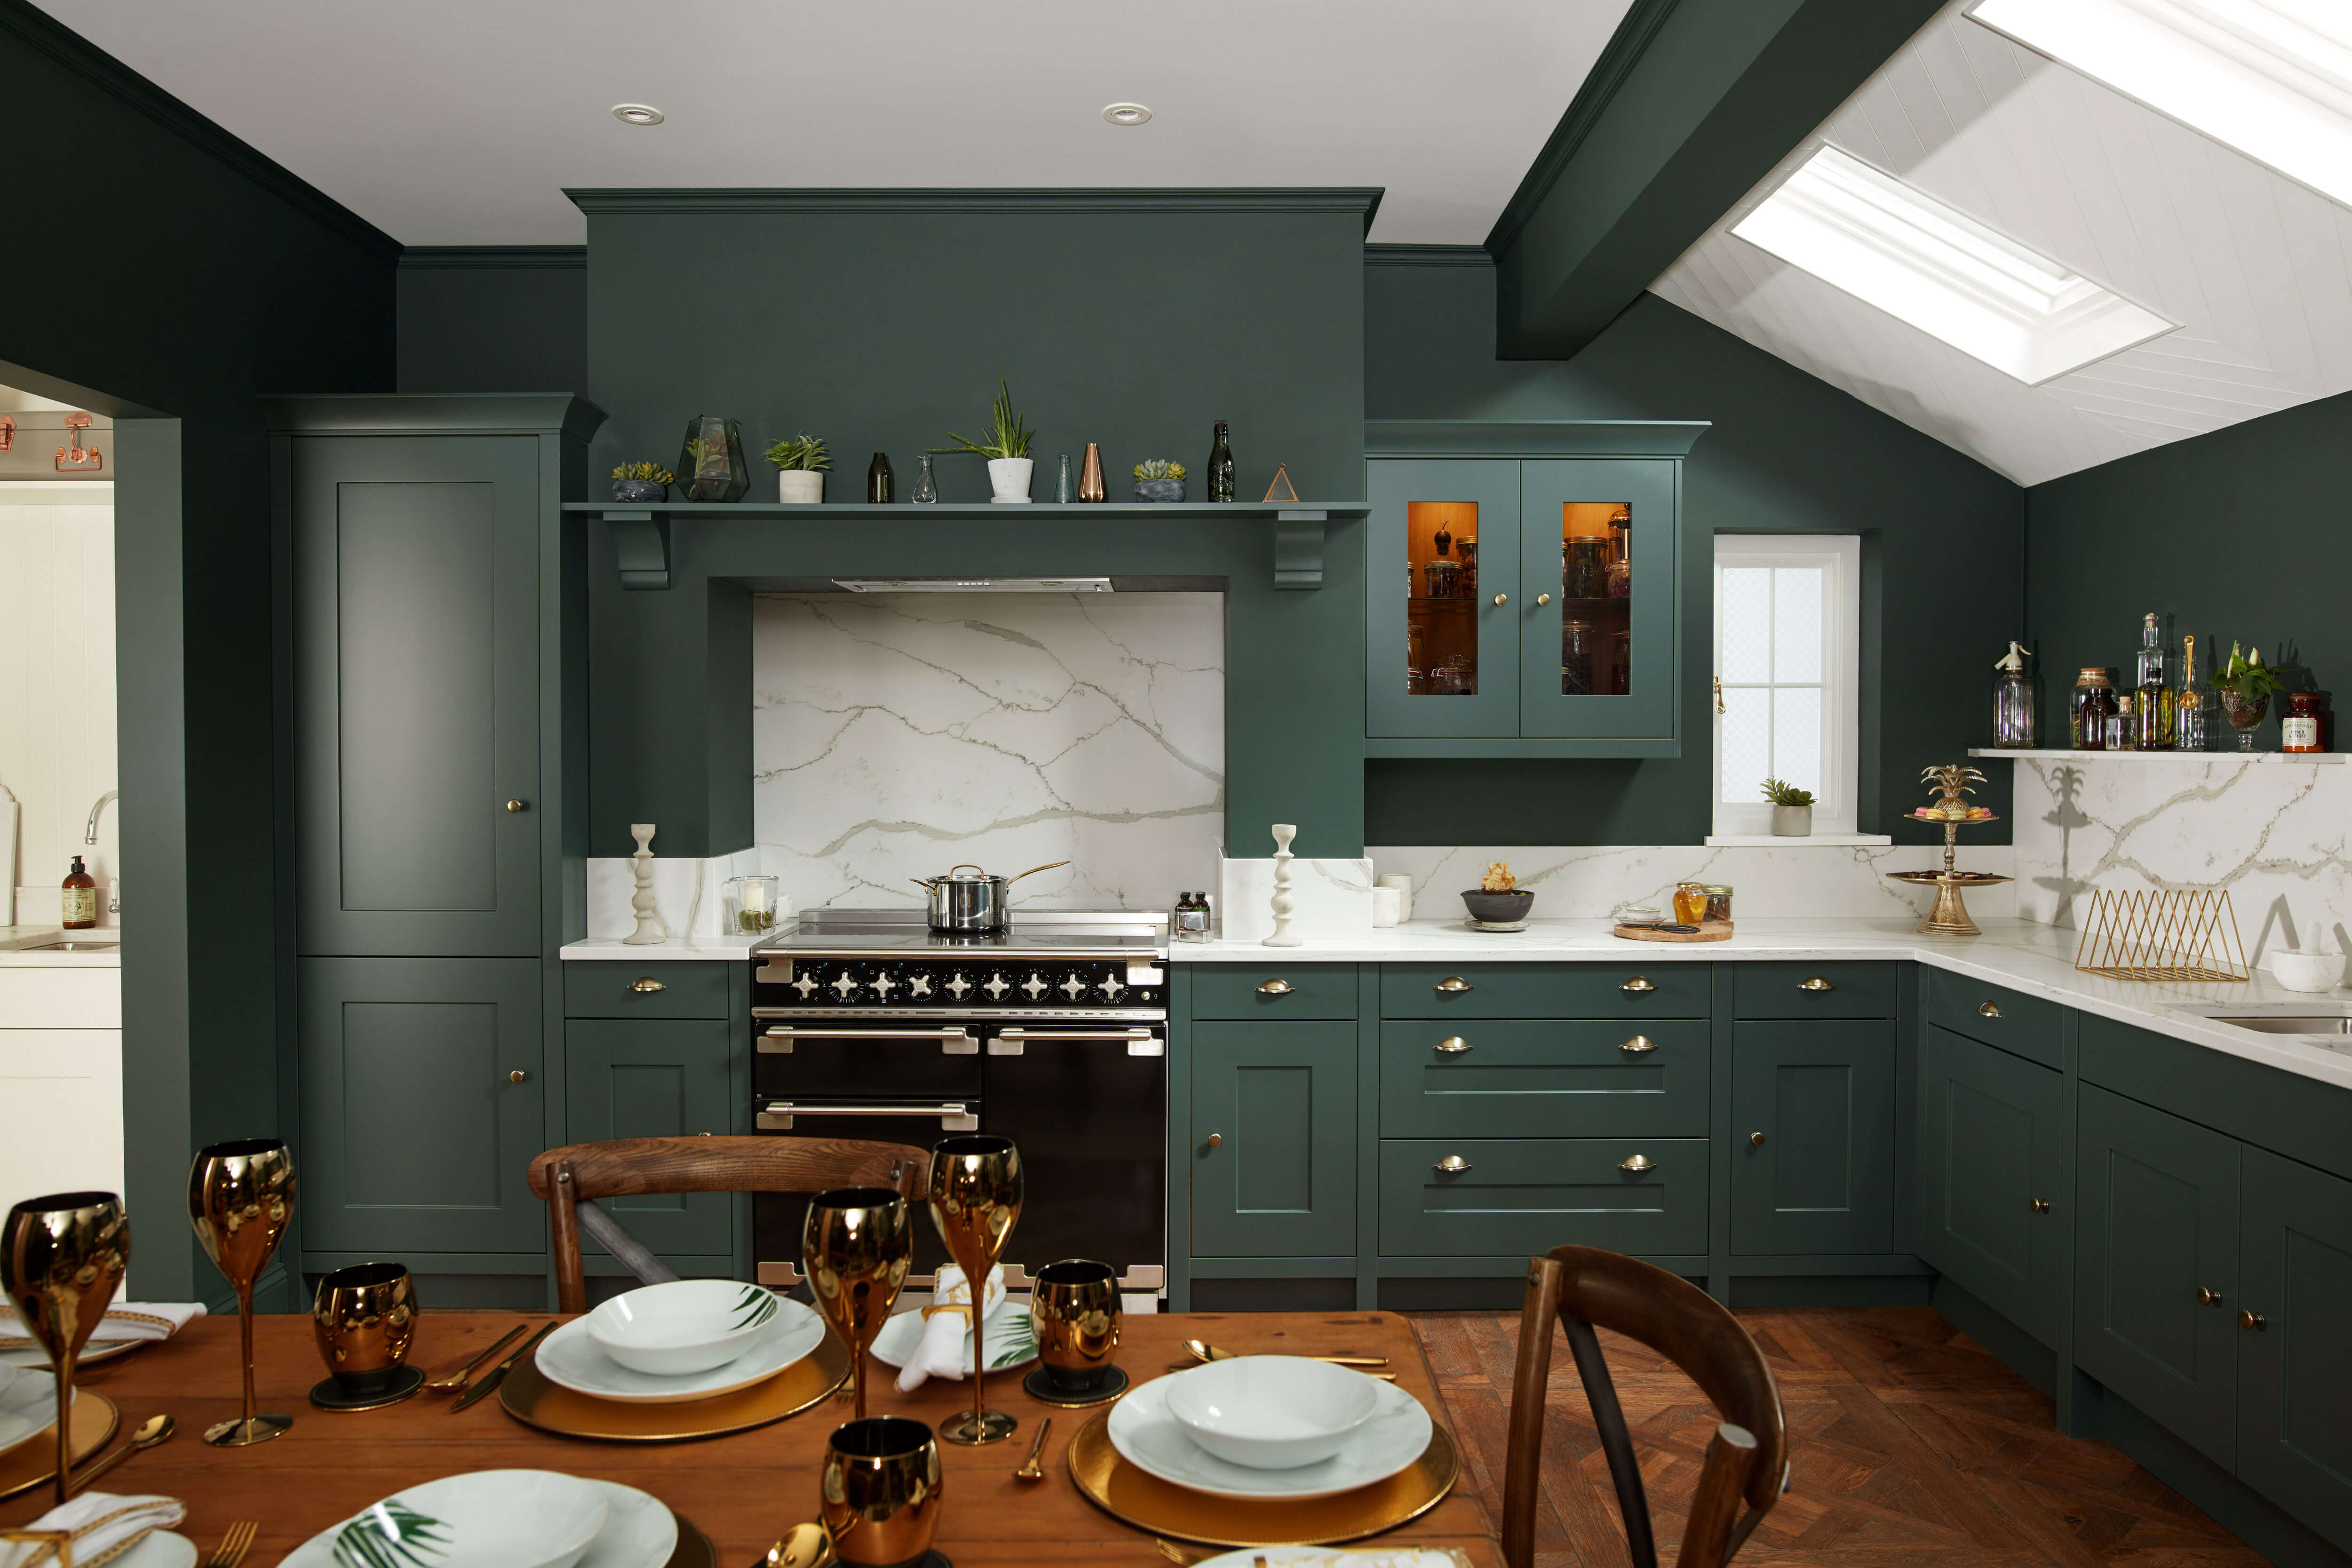 Alchemy-Kitchens-Fitzroy-Gallery6